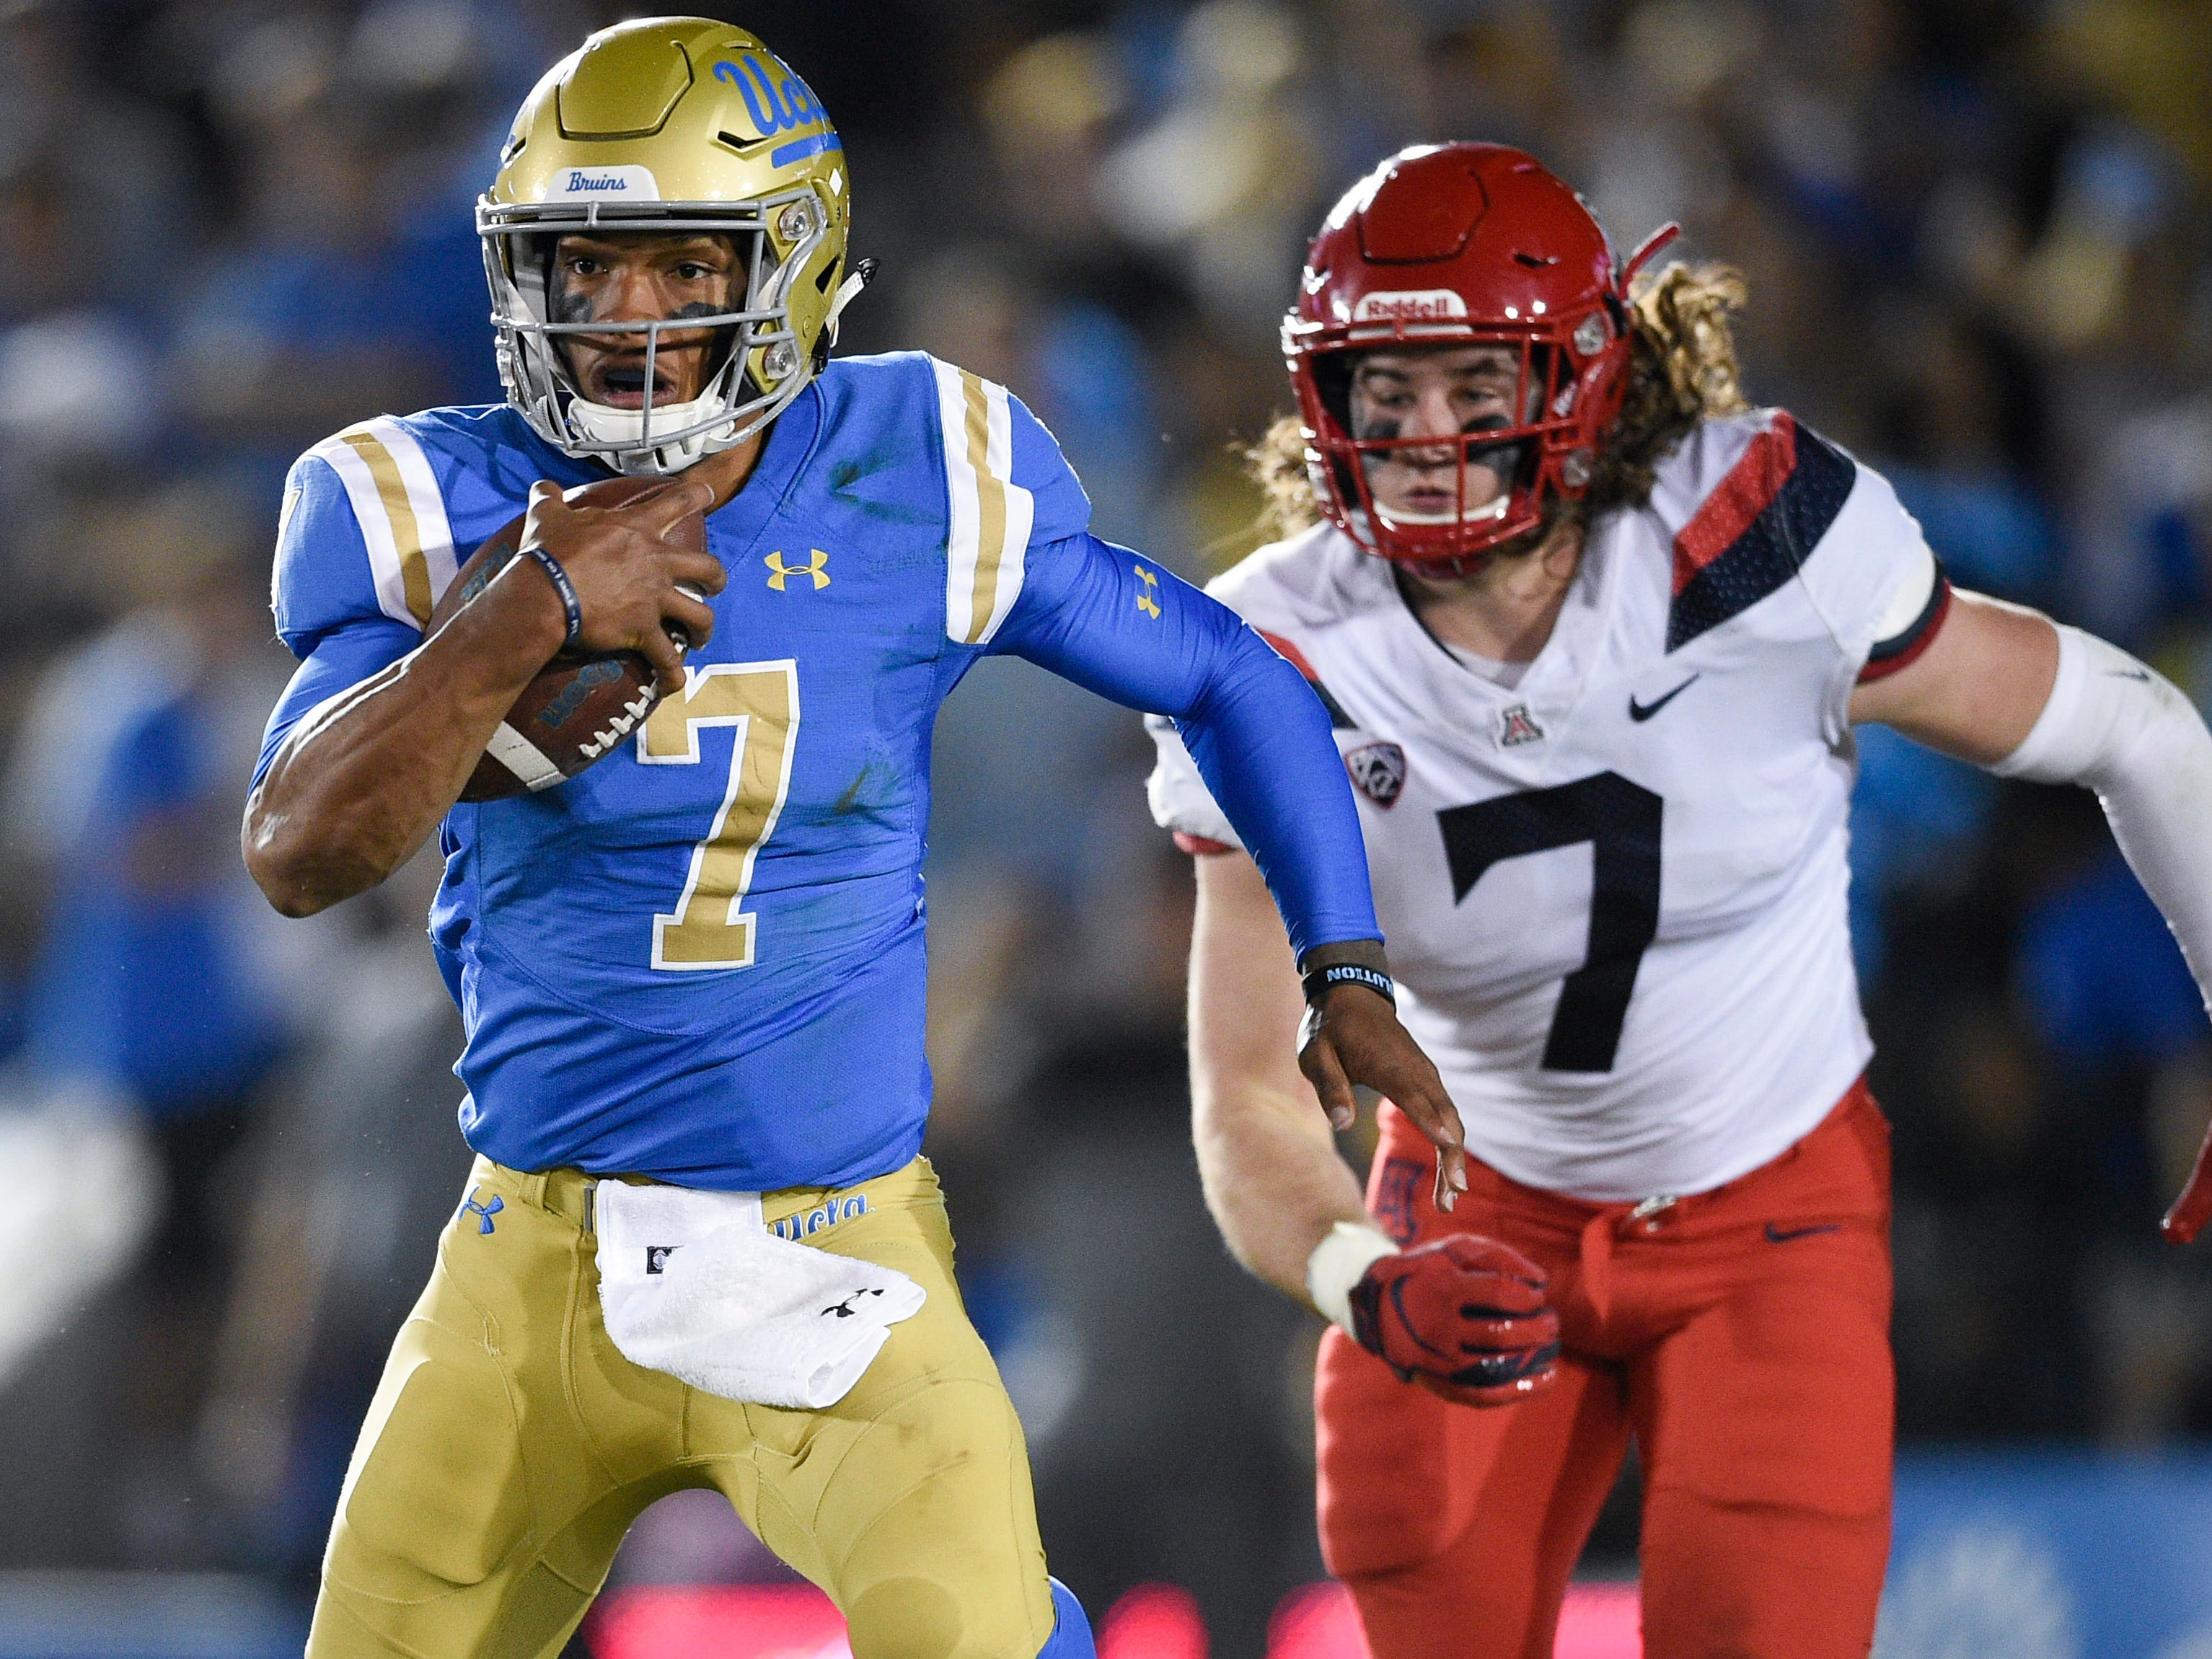 Oct 20, 2018; Pasadena, CA, USA; UCLA Bruins quarterback Dorian Thompson-Robinson (7) runs the ball while under pressure by Arizona Wildcats linebacker Colin Schooler (7) during the first half at Rose Bowl. Mandatory Credit: Kelvin Kuo-USA TODAY Sports